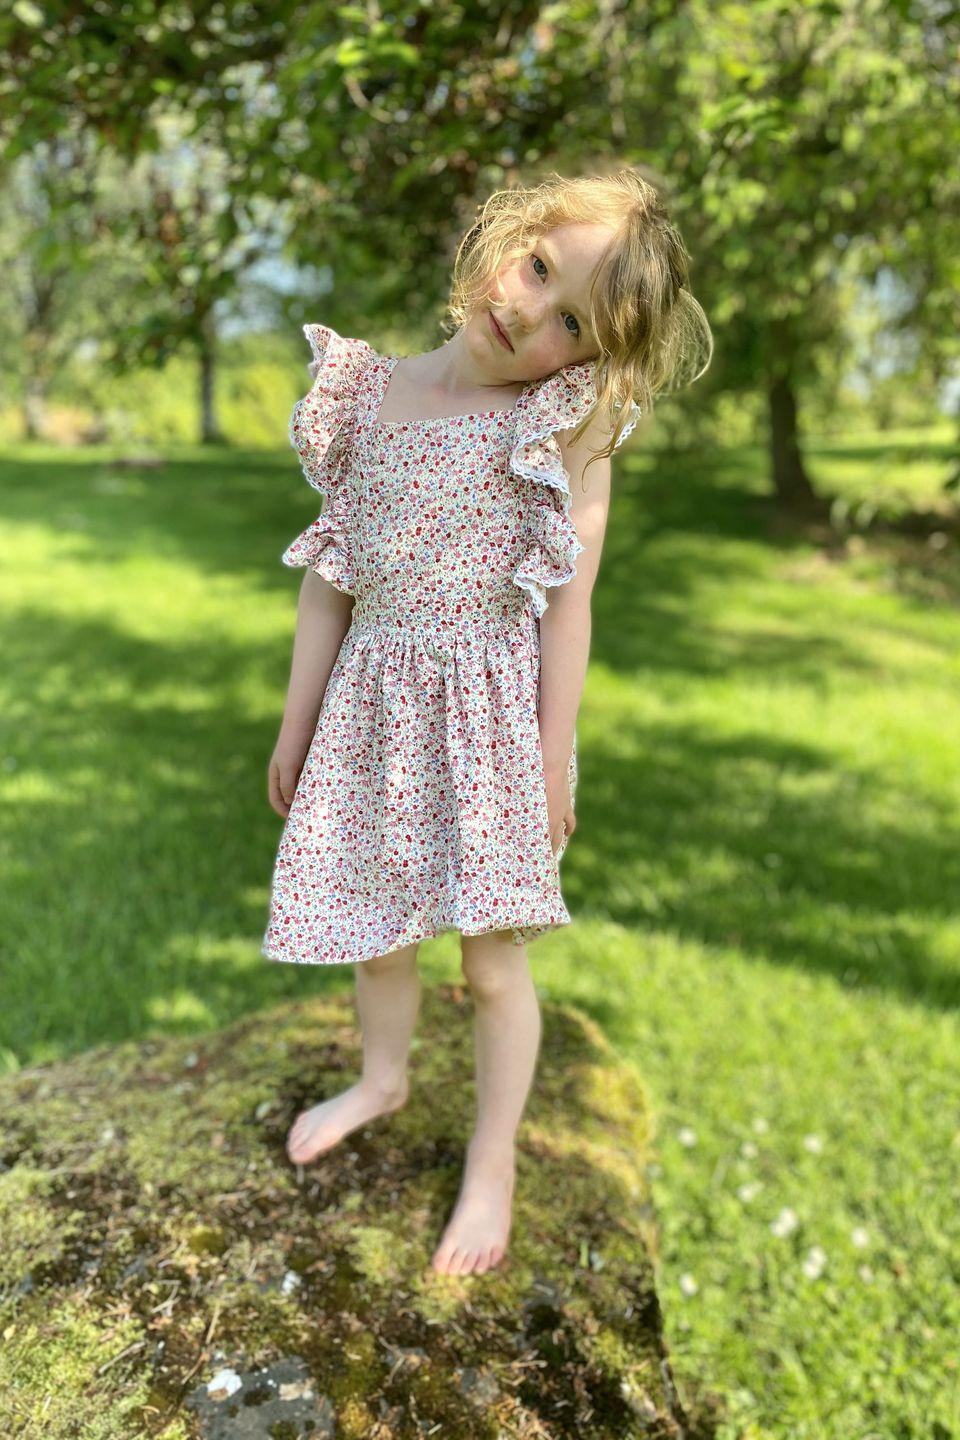 """<p>This British brand designs children's clothes that look like they have fallen straight out of a fairytale, but are robust enough for little ones to frolic about in. Dresses have smocking, floral prints and playful embroidery, while trousers boast statement tartan and gingham prints in bold colours. <a href=""""https://www.harpersbazaar.com/uk/culture/culture-news/a27233451/prince-louis-first-birthday-photographs/"""" rel=""""nofollow noopener"""" target=""""_blank"""" data-ylk=""""slk:Prince Louis was dressed in an Elfie London knit"""" class=""""link rapid-noclick-resp"""">Prince Louis was dressed in an Elfie London knit</a> for his first birthday portrait in 2019.</p><p><a class=""""link rapid-noclick-resp"""" href=""""https://go.redirectingat.com?id=127X1599956&url=https%3A%2F%2Fwww.elfielondon.com%2F&sref=https%3A%2F%2Fwww.harpersbazaar.com%2Fuk%2Ffashion%2Fg36661033%2Fchildrenswear-fashion-brands-royal-family%2F"""" rel=""""nofollow noopener"""" target=""""_blank"""" data-ylk=""""slk:SHOP NOW"""">SHOP NOW</a></p>"""